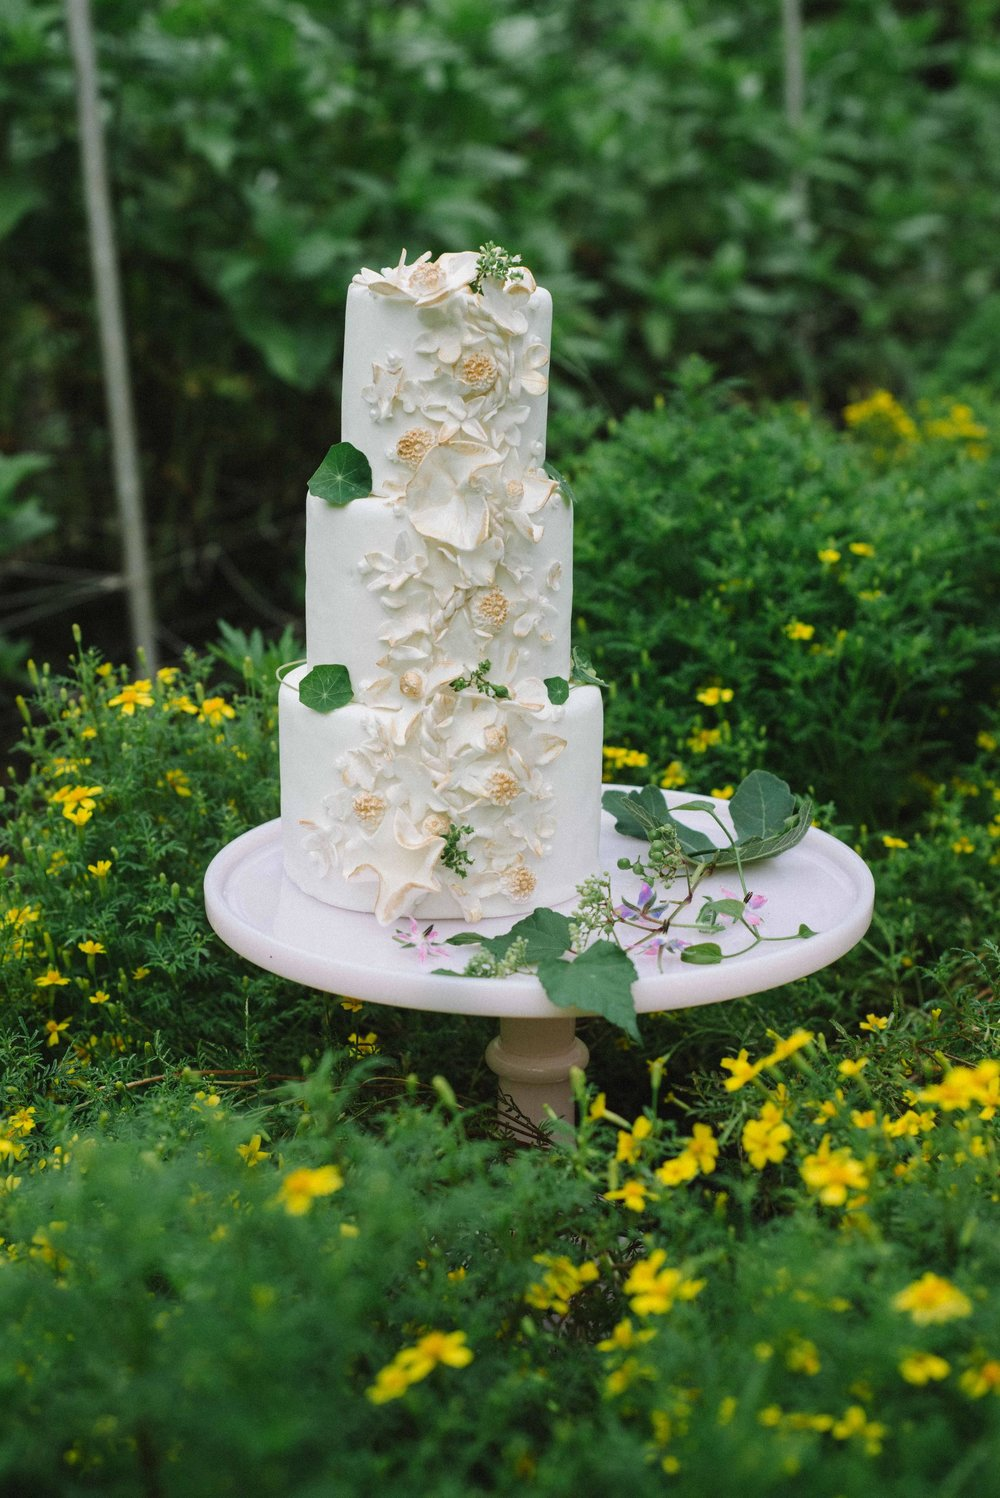 Cake by Cowbell Kitchen, Photo by Amber Breitenberg